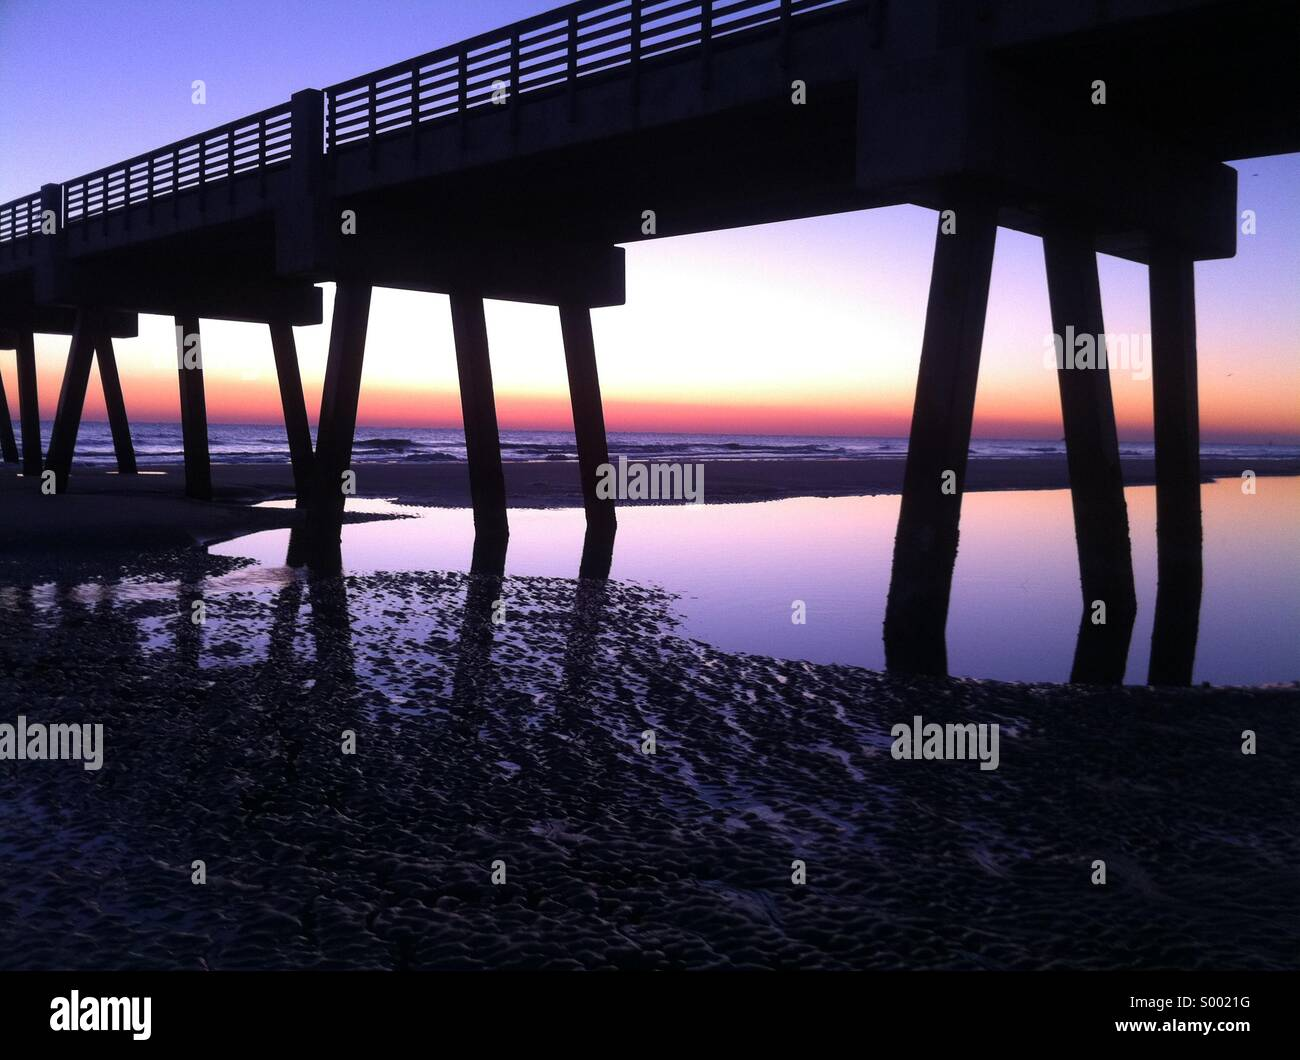 Pooled water reflects a vibrant sunrise sky at Jacksonville Beach Pier in Jacksonville Beach, Florida. USA. Stock Photo